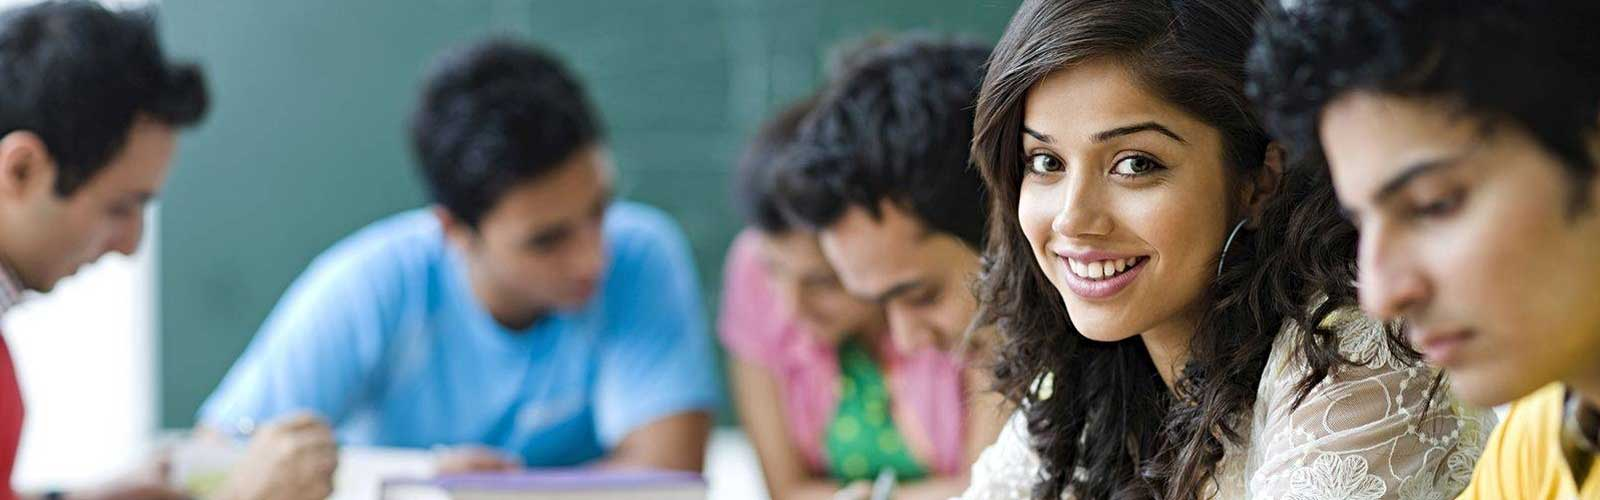 IAS Coaching Institute in Delhi, Vajirao IAS & UPSC Exam Preparation Coaching Classes/Center in India